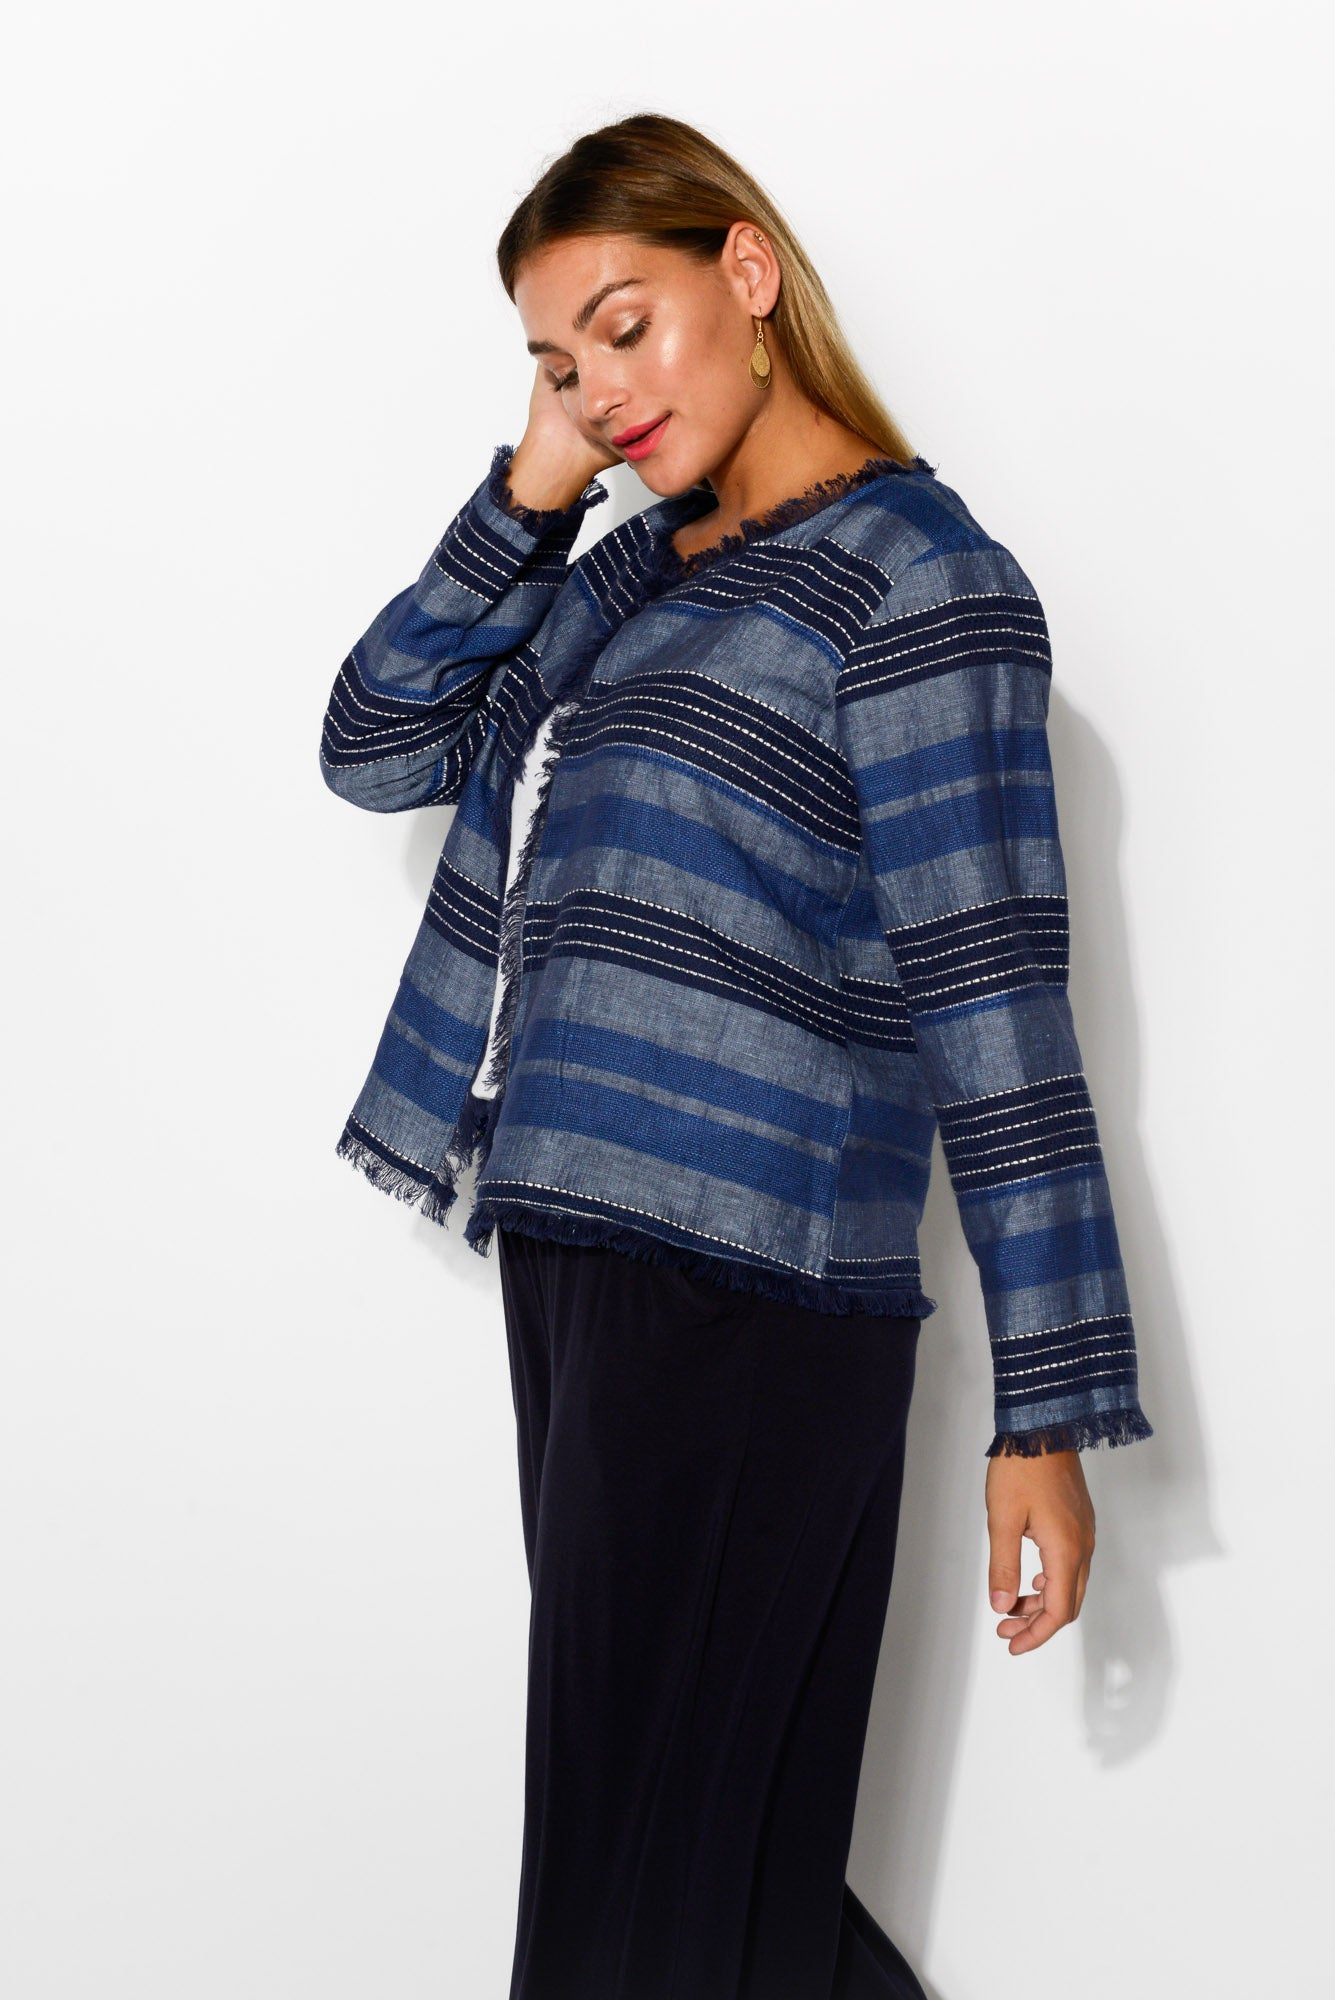 Blue Stripe Linen Cotton Jacket - Blue Bungalow